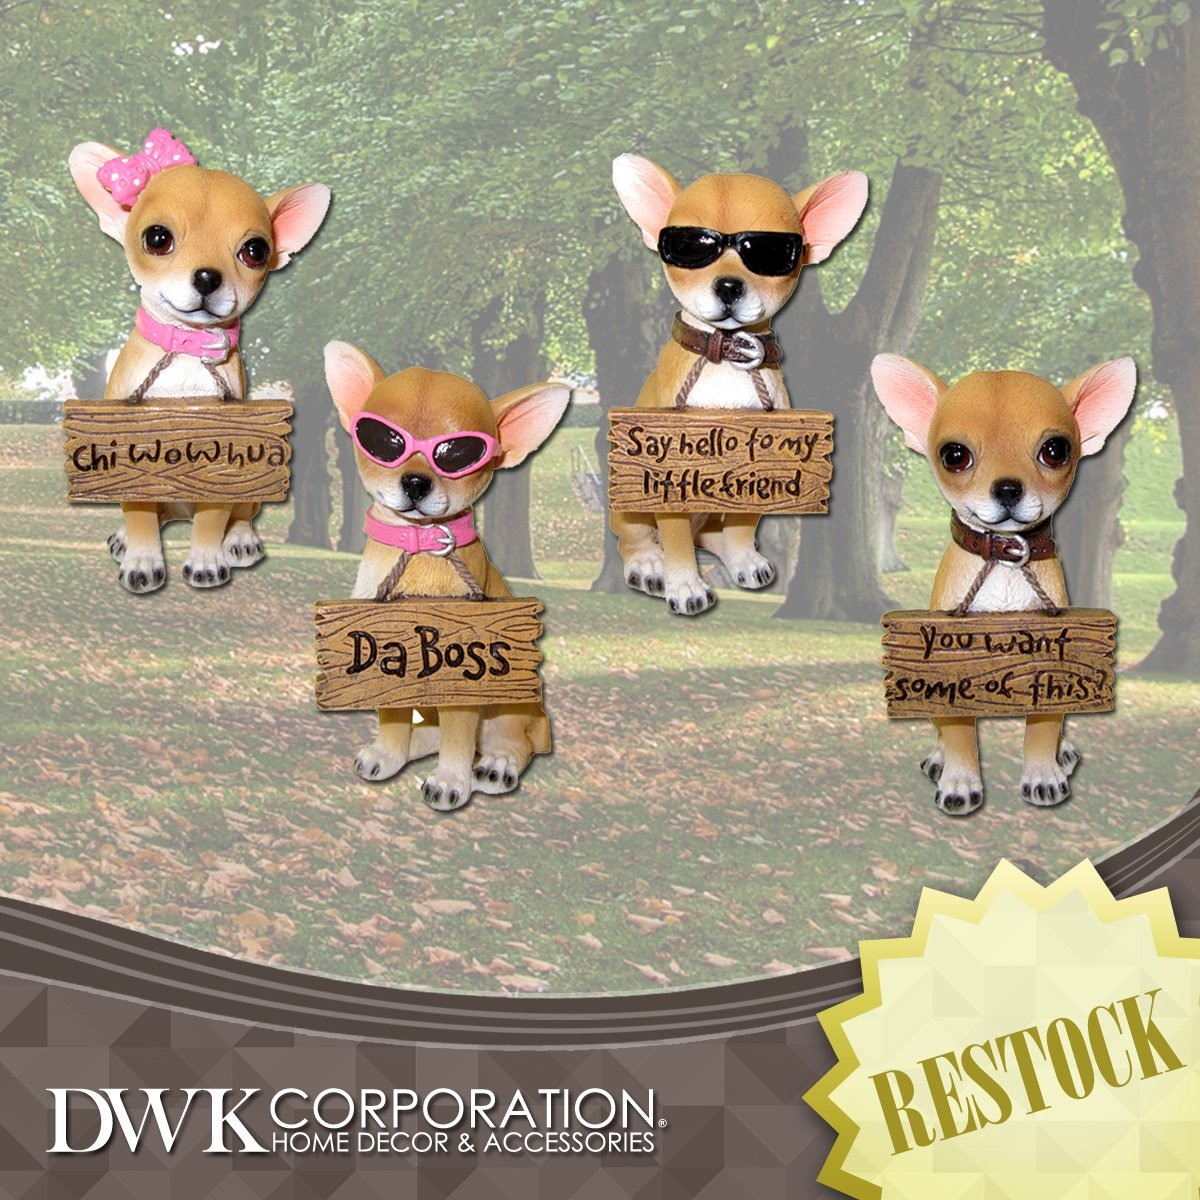 Dwk Home Decor And Accessories from pbs.twimg.com